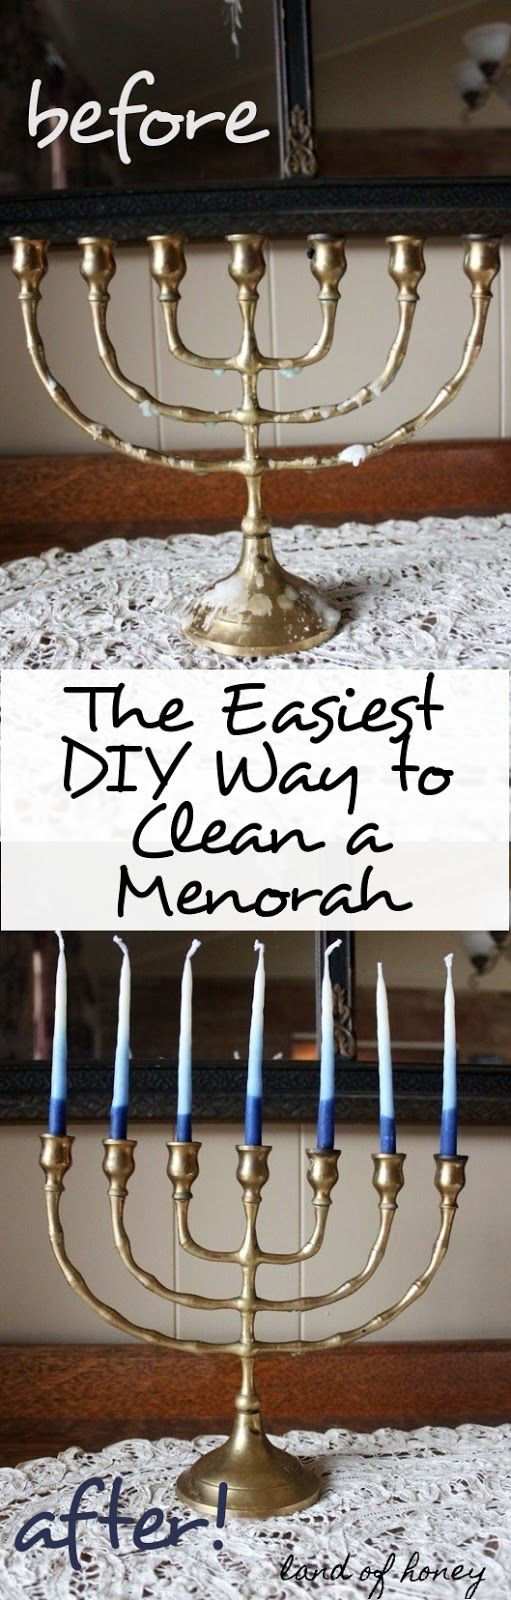 Super simple way to clean your menorah! | Land of Honey                                                                                                                                                                                 More